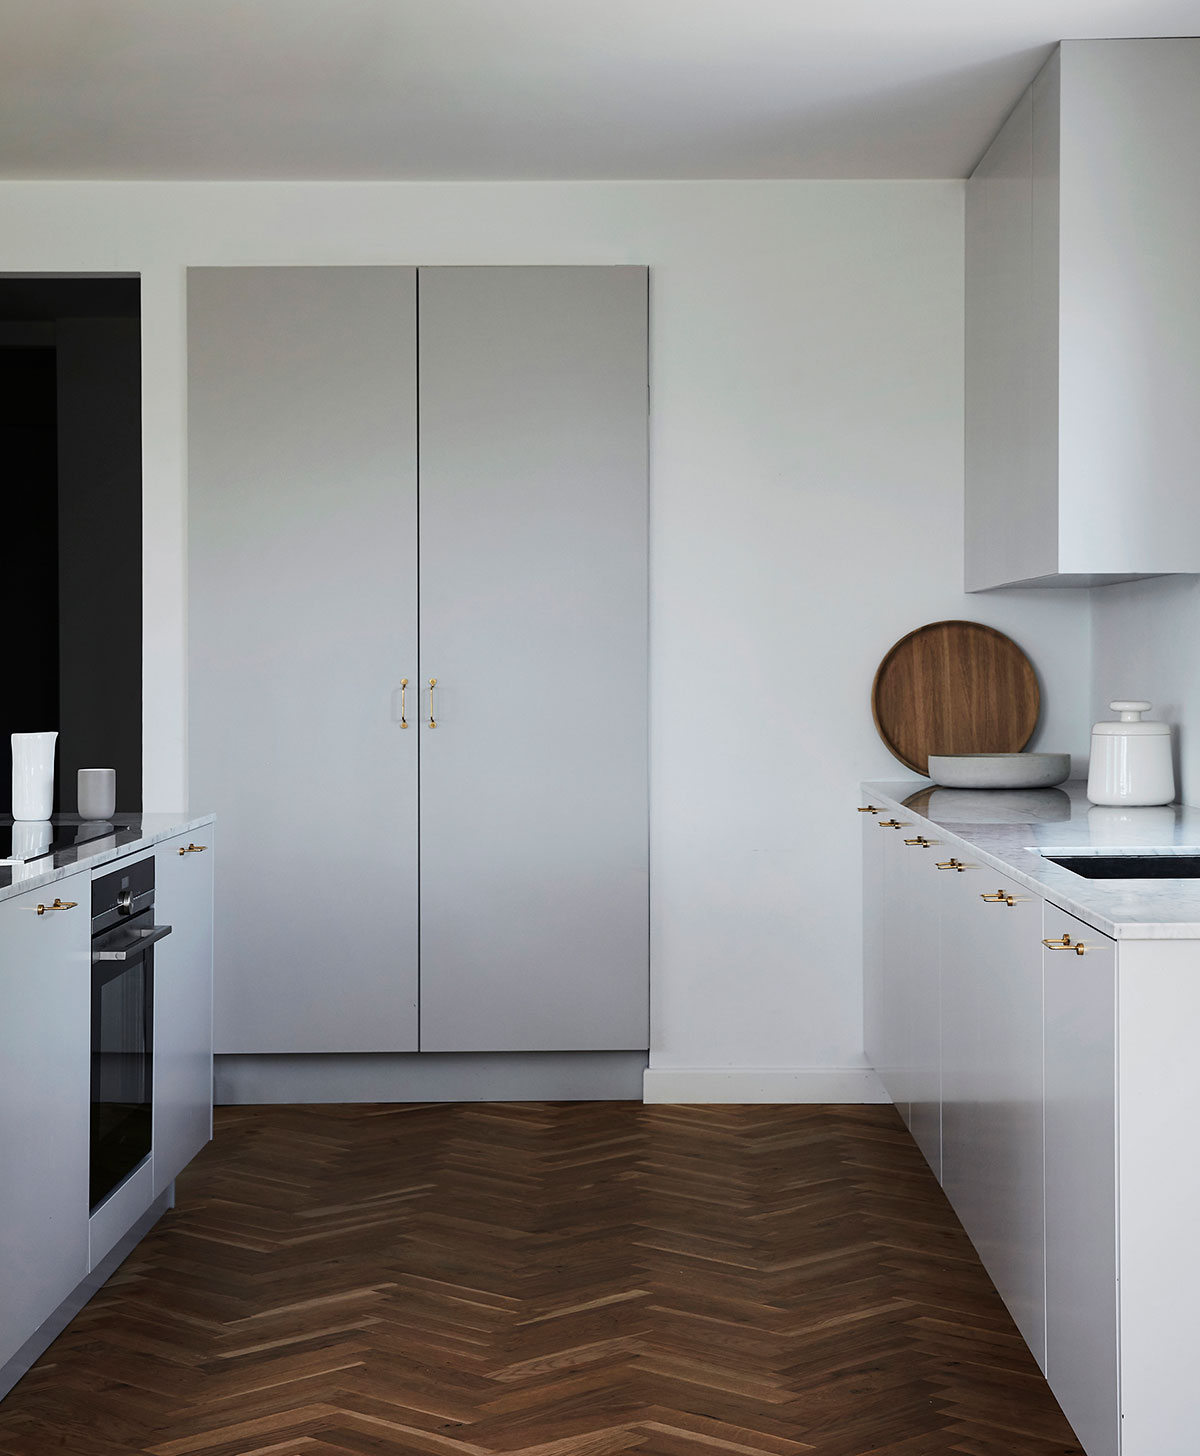 Minimalist grey kitchen in modern design with kitchen island